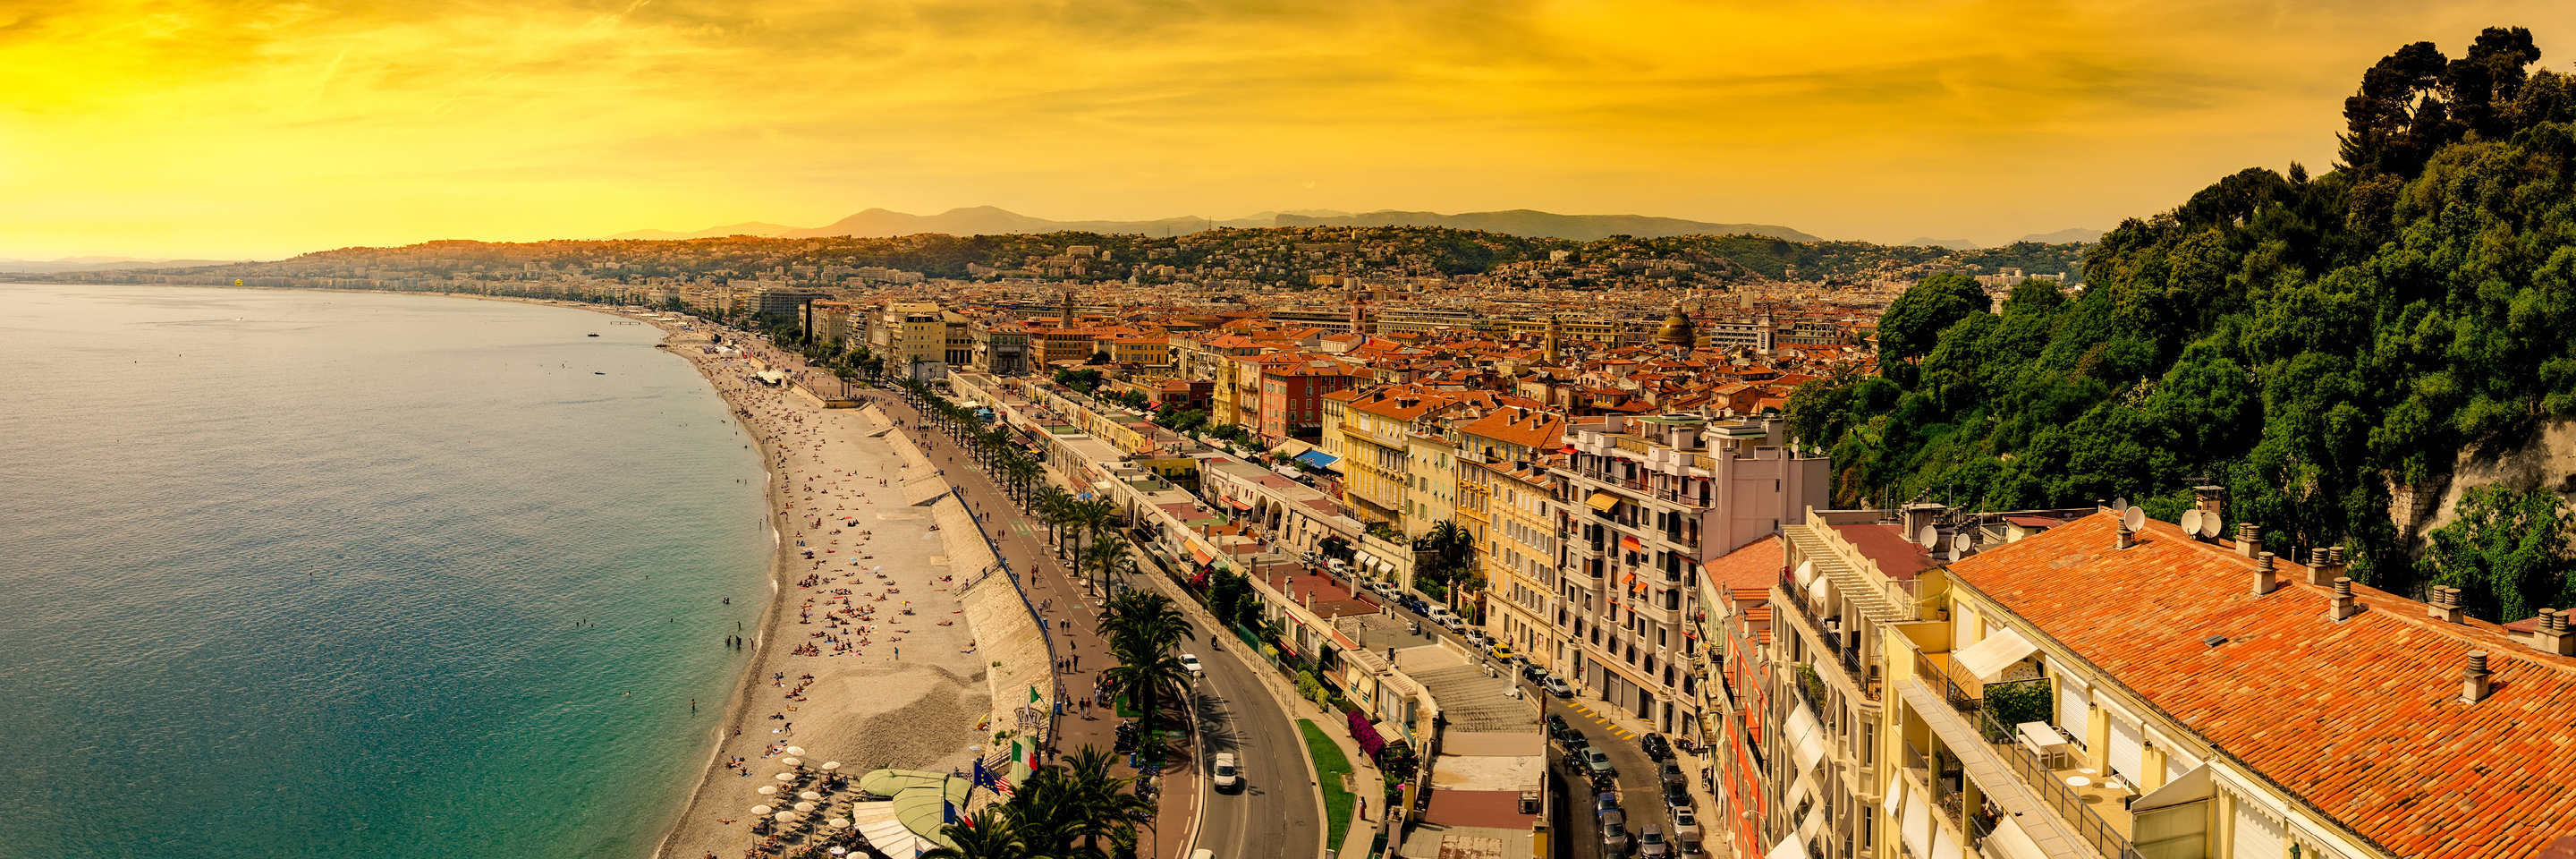 Burgundy & Provence with 2  Nights in Aix-en-Provence & 2 Nights in Nice for Wine Lovers (Southbound)